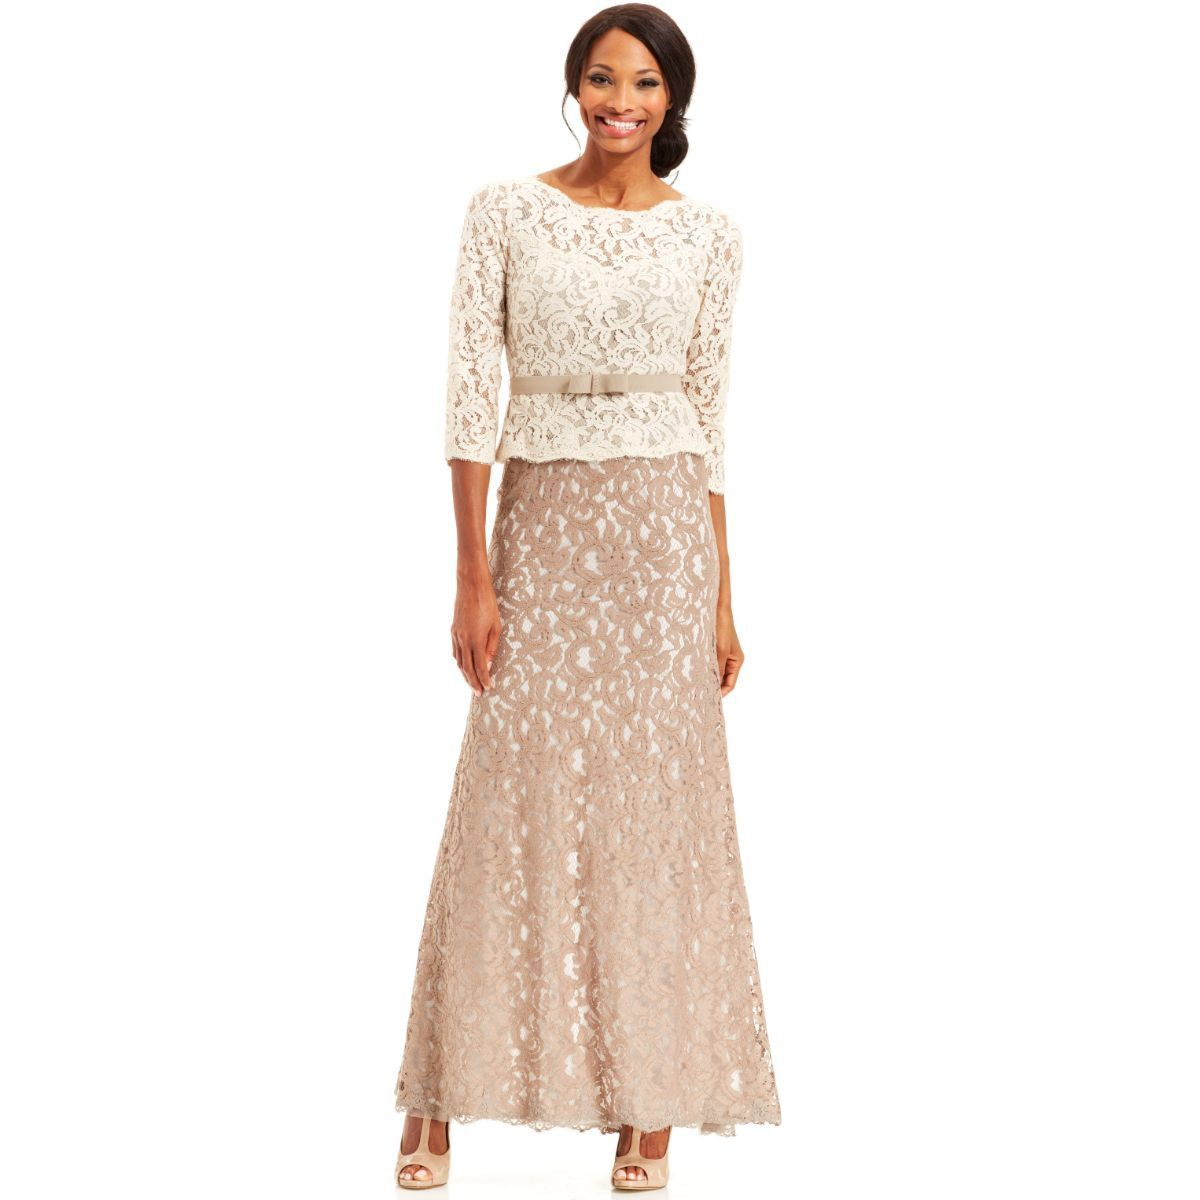 Beca Desfiladero cocinero  Adrianna Papell Lace Colorblock Belted Peplum Gown   Lace gown, Ball gowns,  Bride dress lace